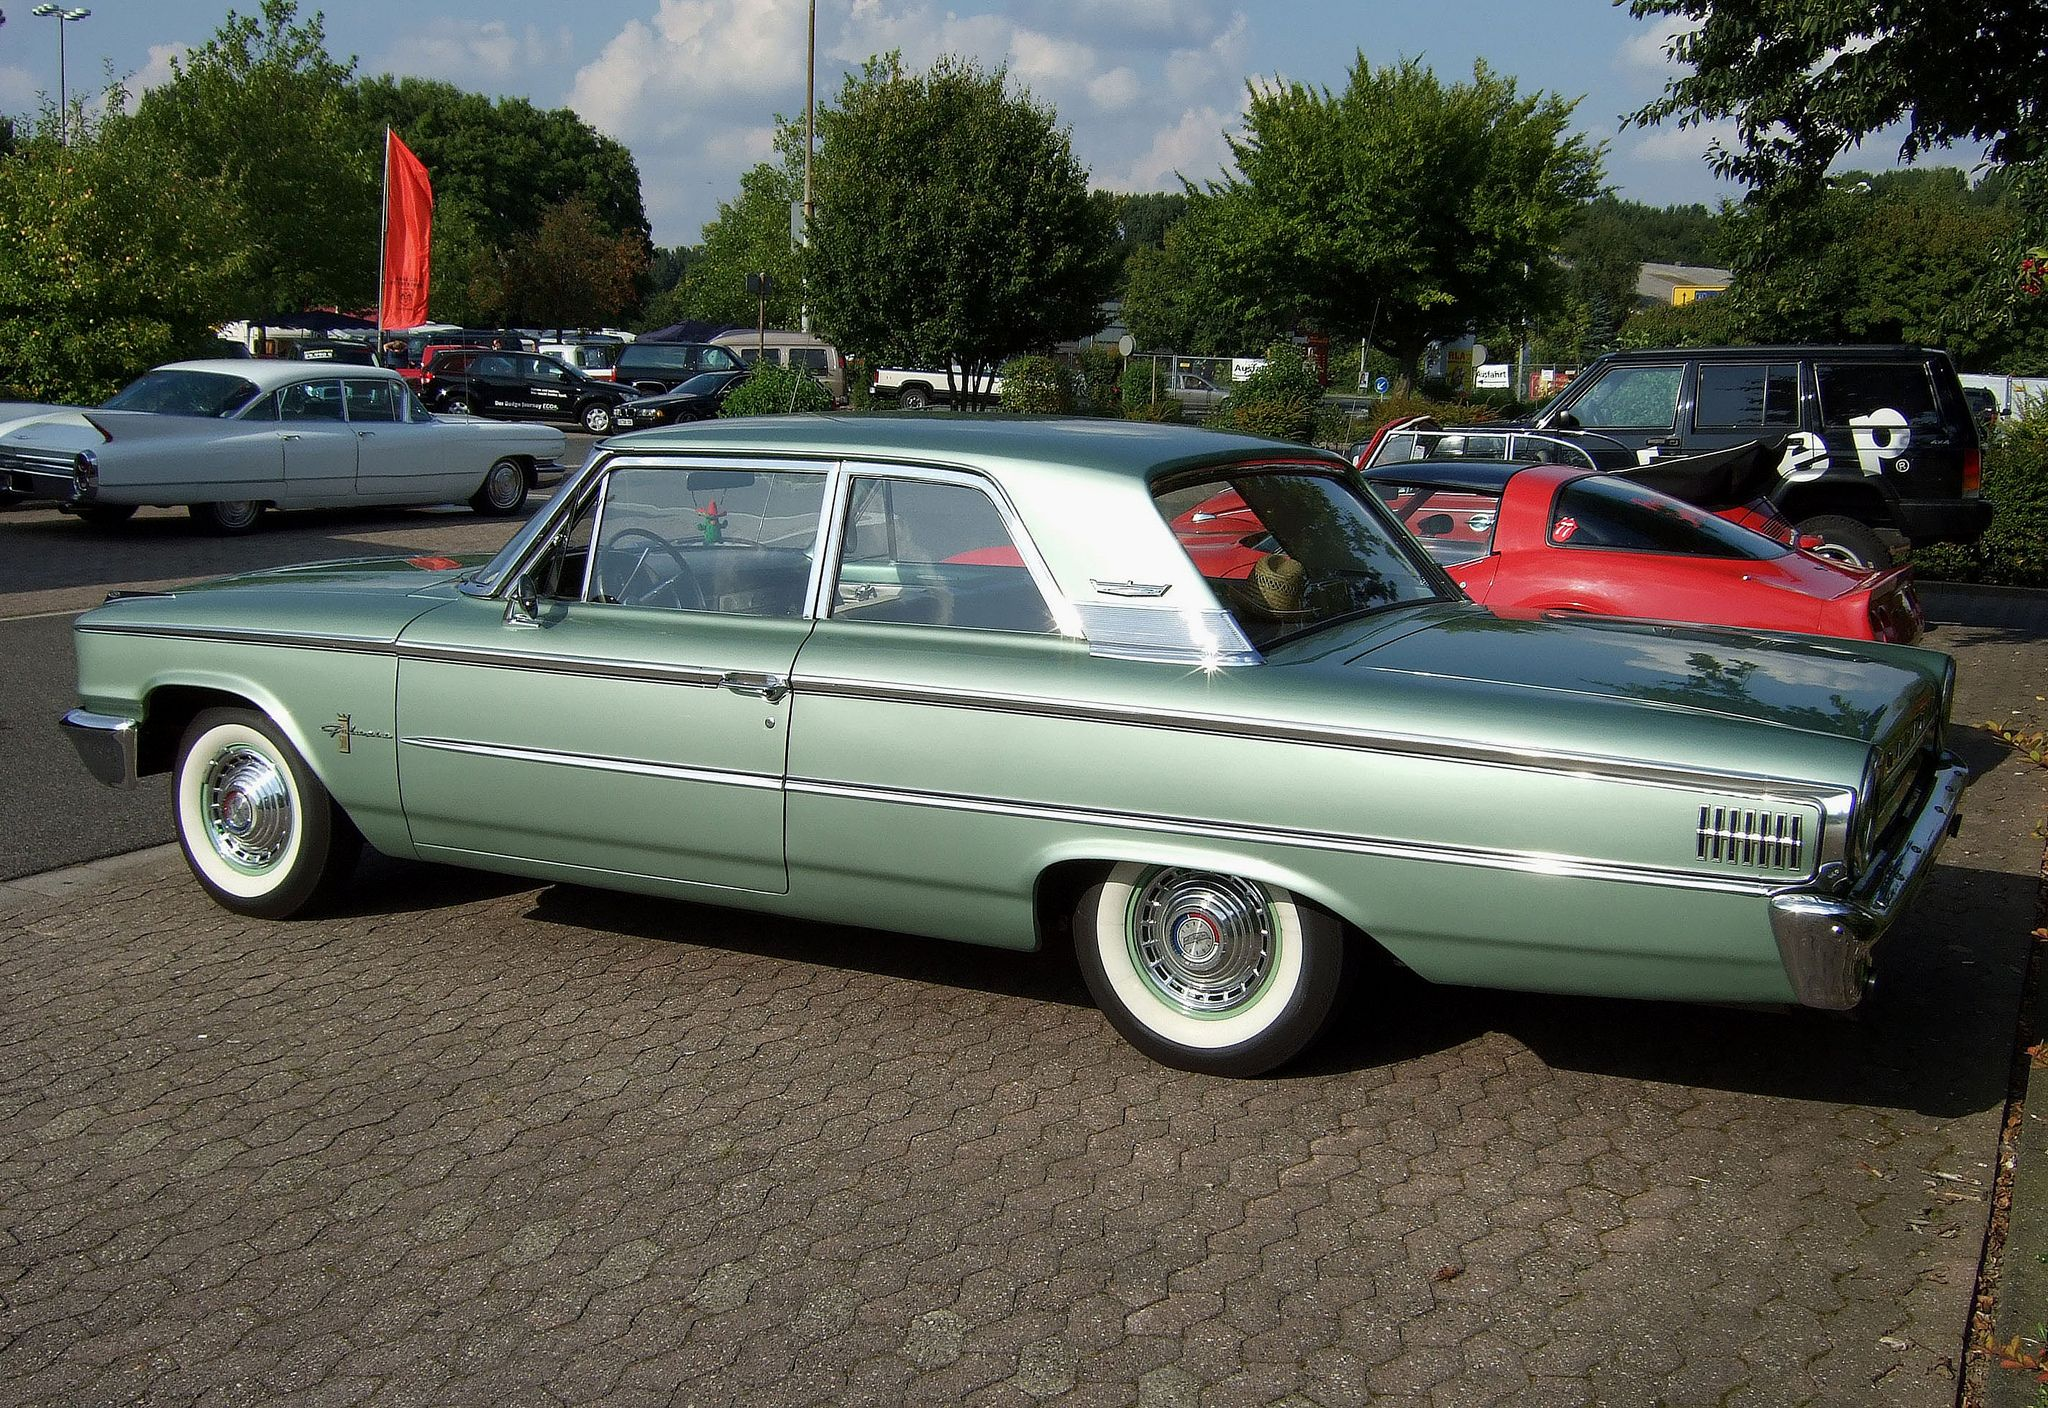 1963 ford galaxie 289 - 63 Ford Galaxie Parts Google Search Galaxies Pinterest Ford Galaxie Ford And Wheels